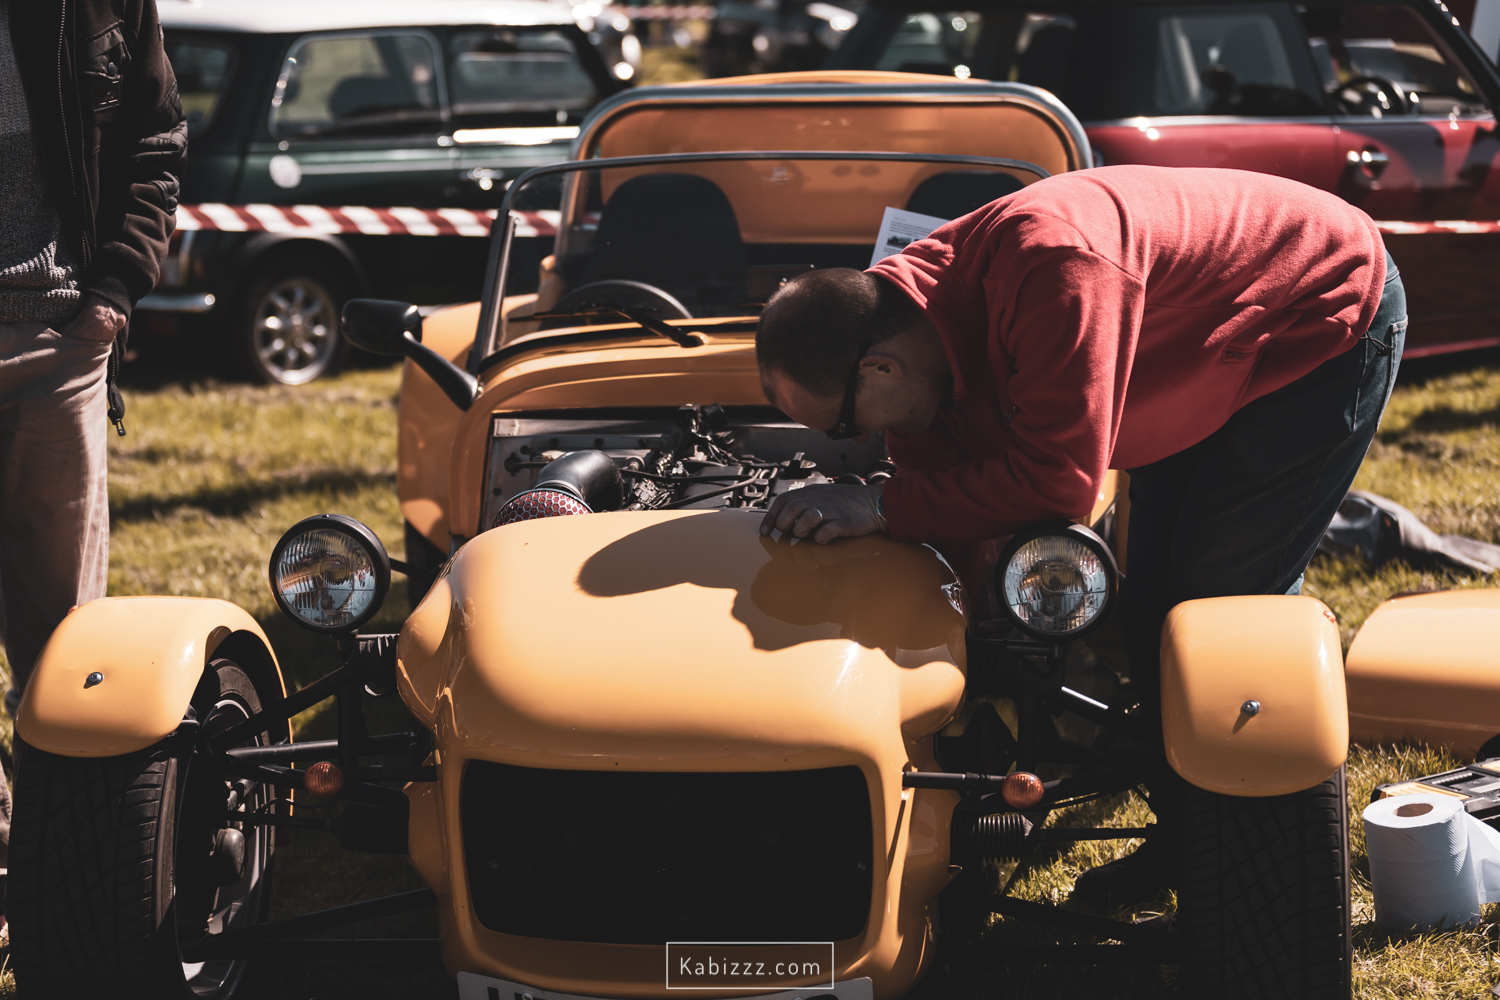 Kabizzz_Photography_Stirling_District_Classic _cars-17.jpg